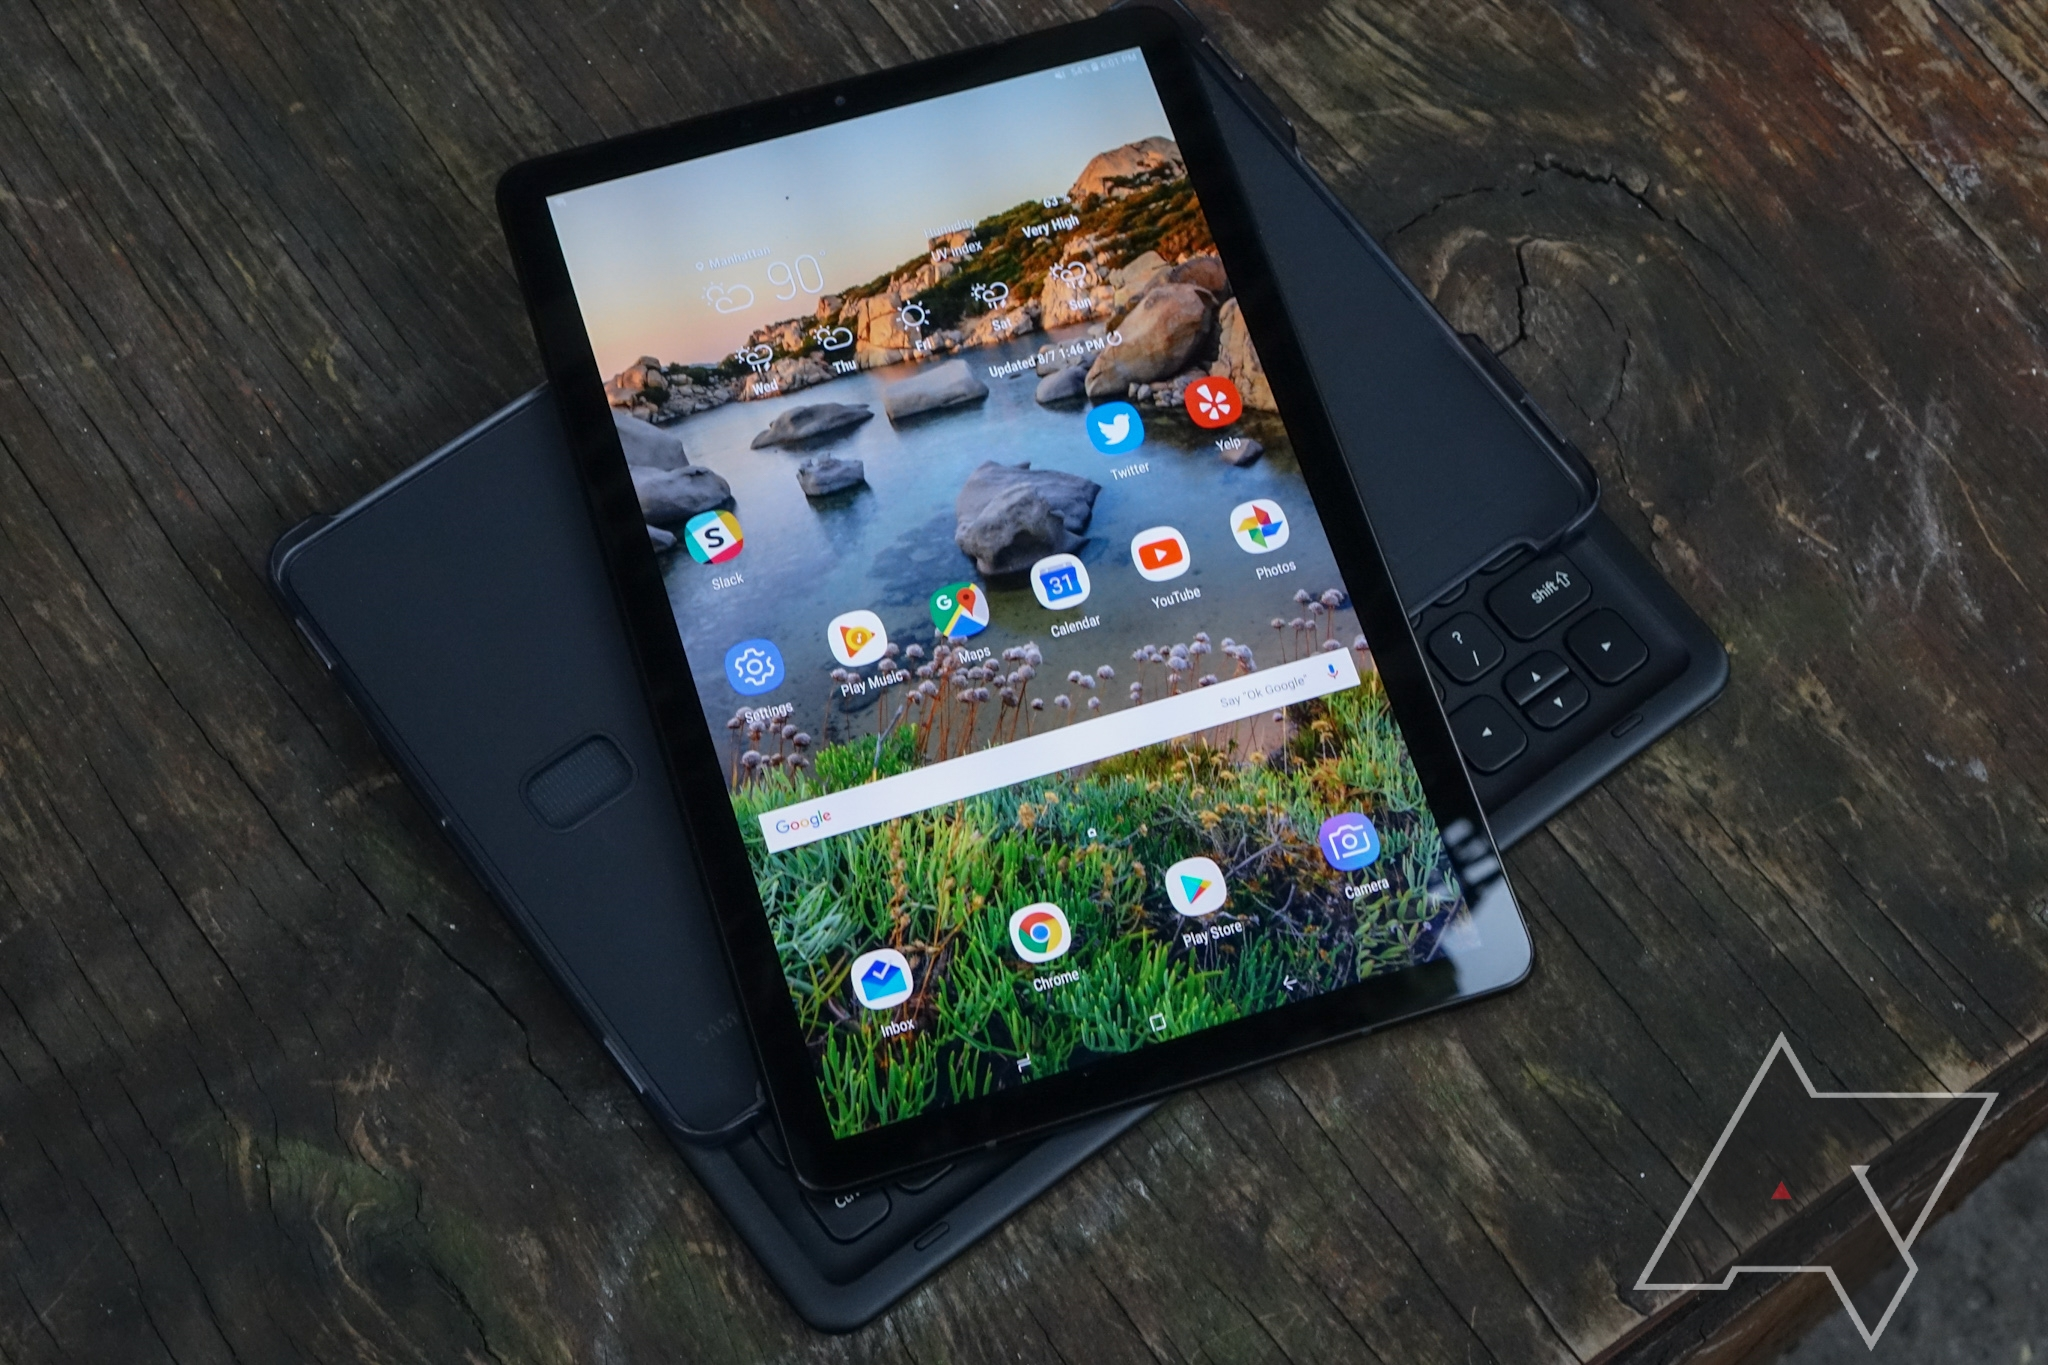 88f0bdccfda If you've searched for an Android tablet in recent years, especially one in  the premium segment, you've probably noticed that there are precious few  options ...